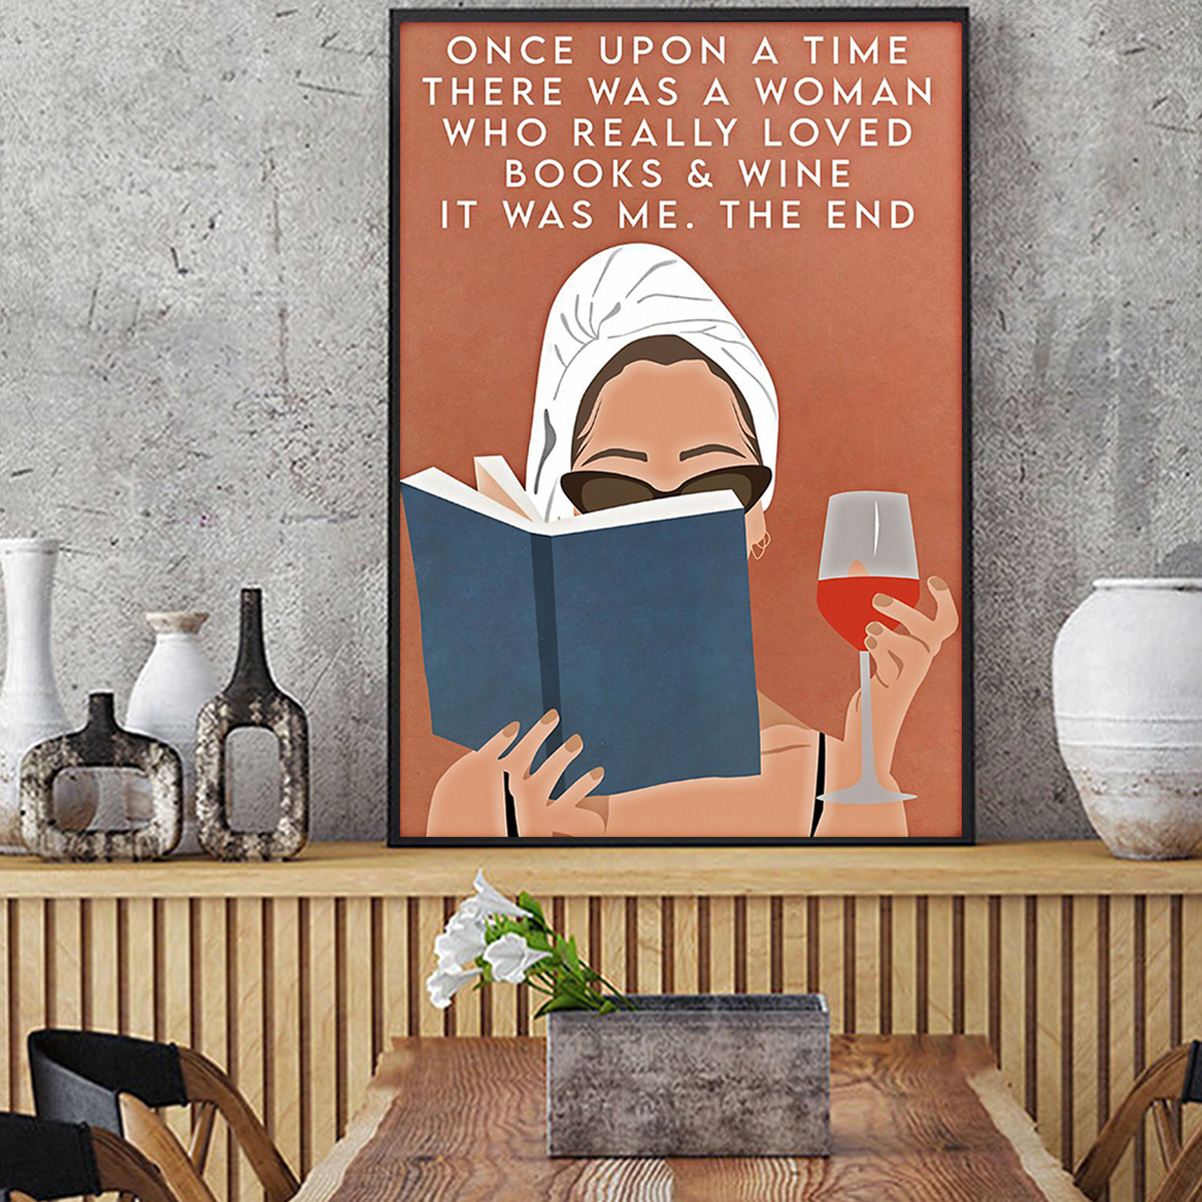 Once upon a time there was a woman who really loved books and wine poster A3